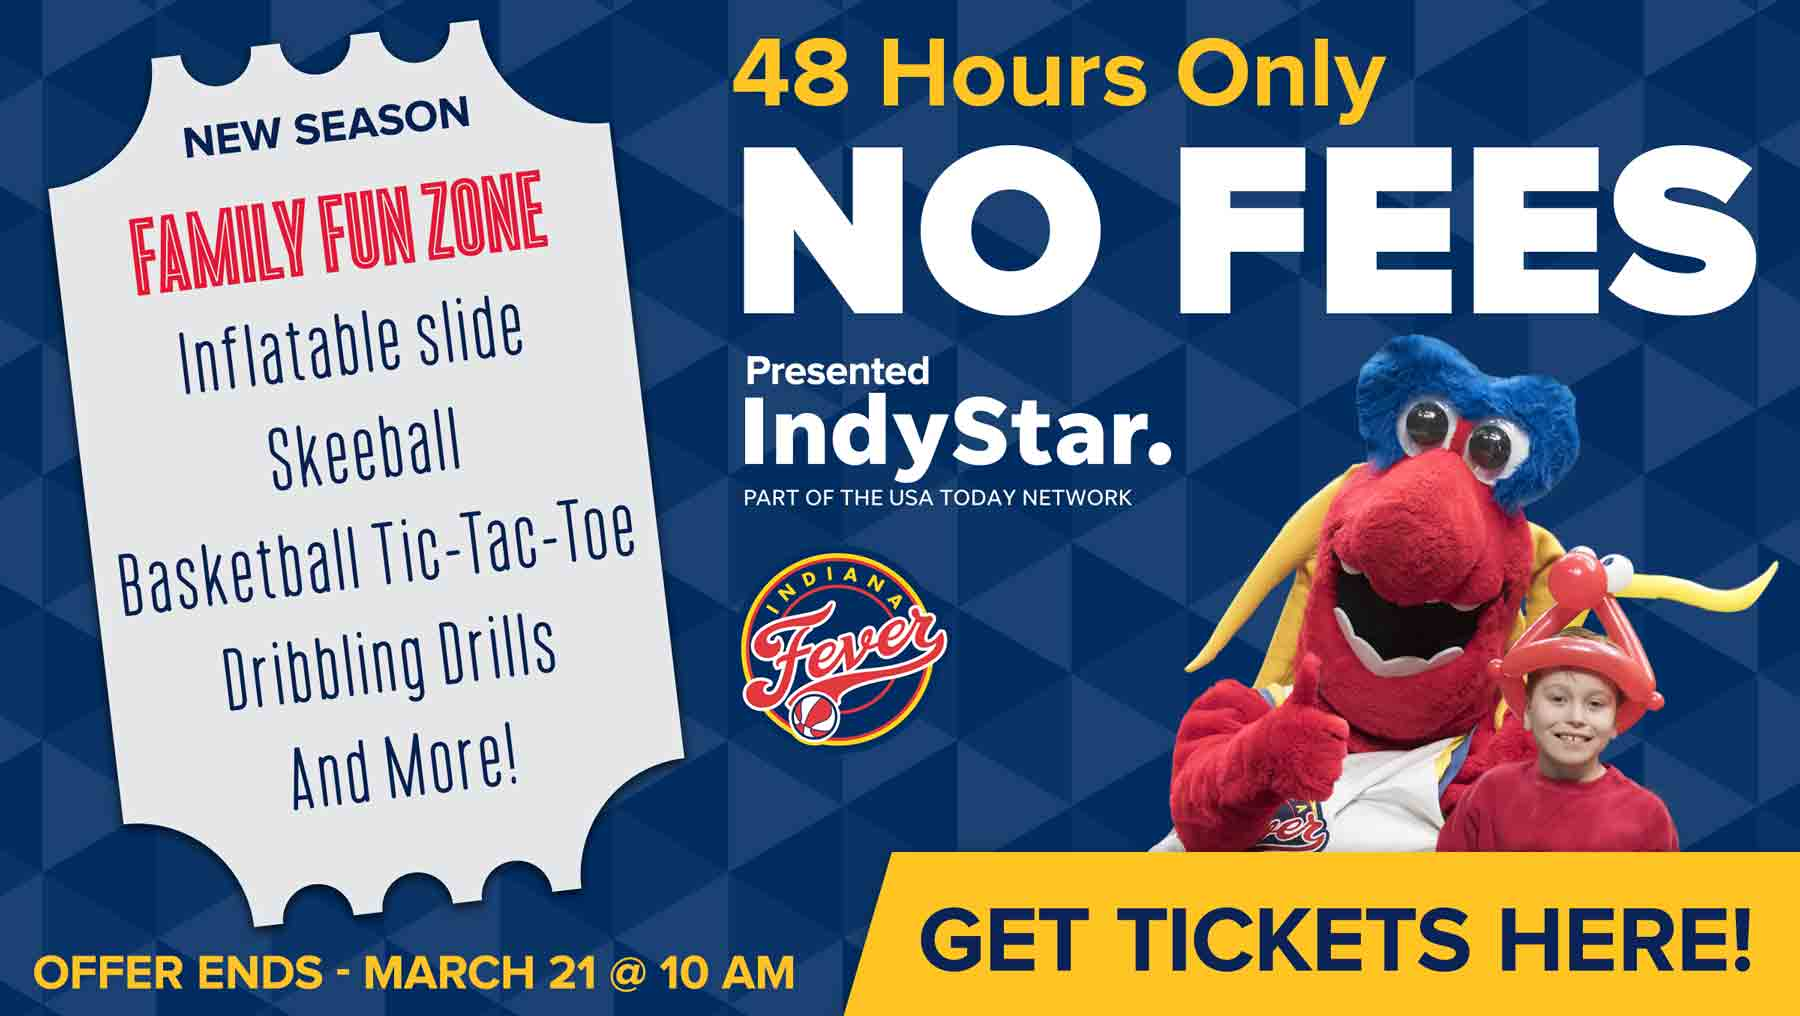 NO FEES for 48 Hours! Presented by the IndyStar